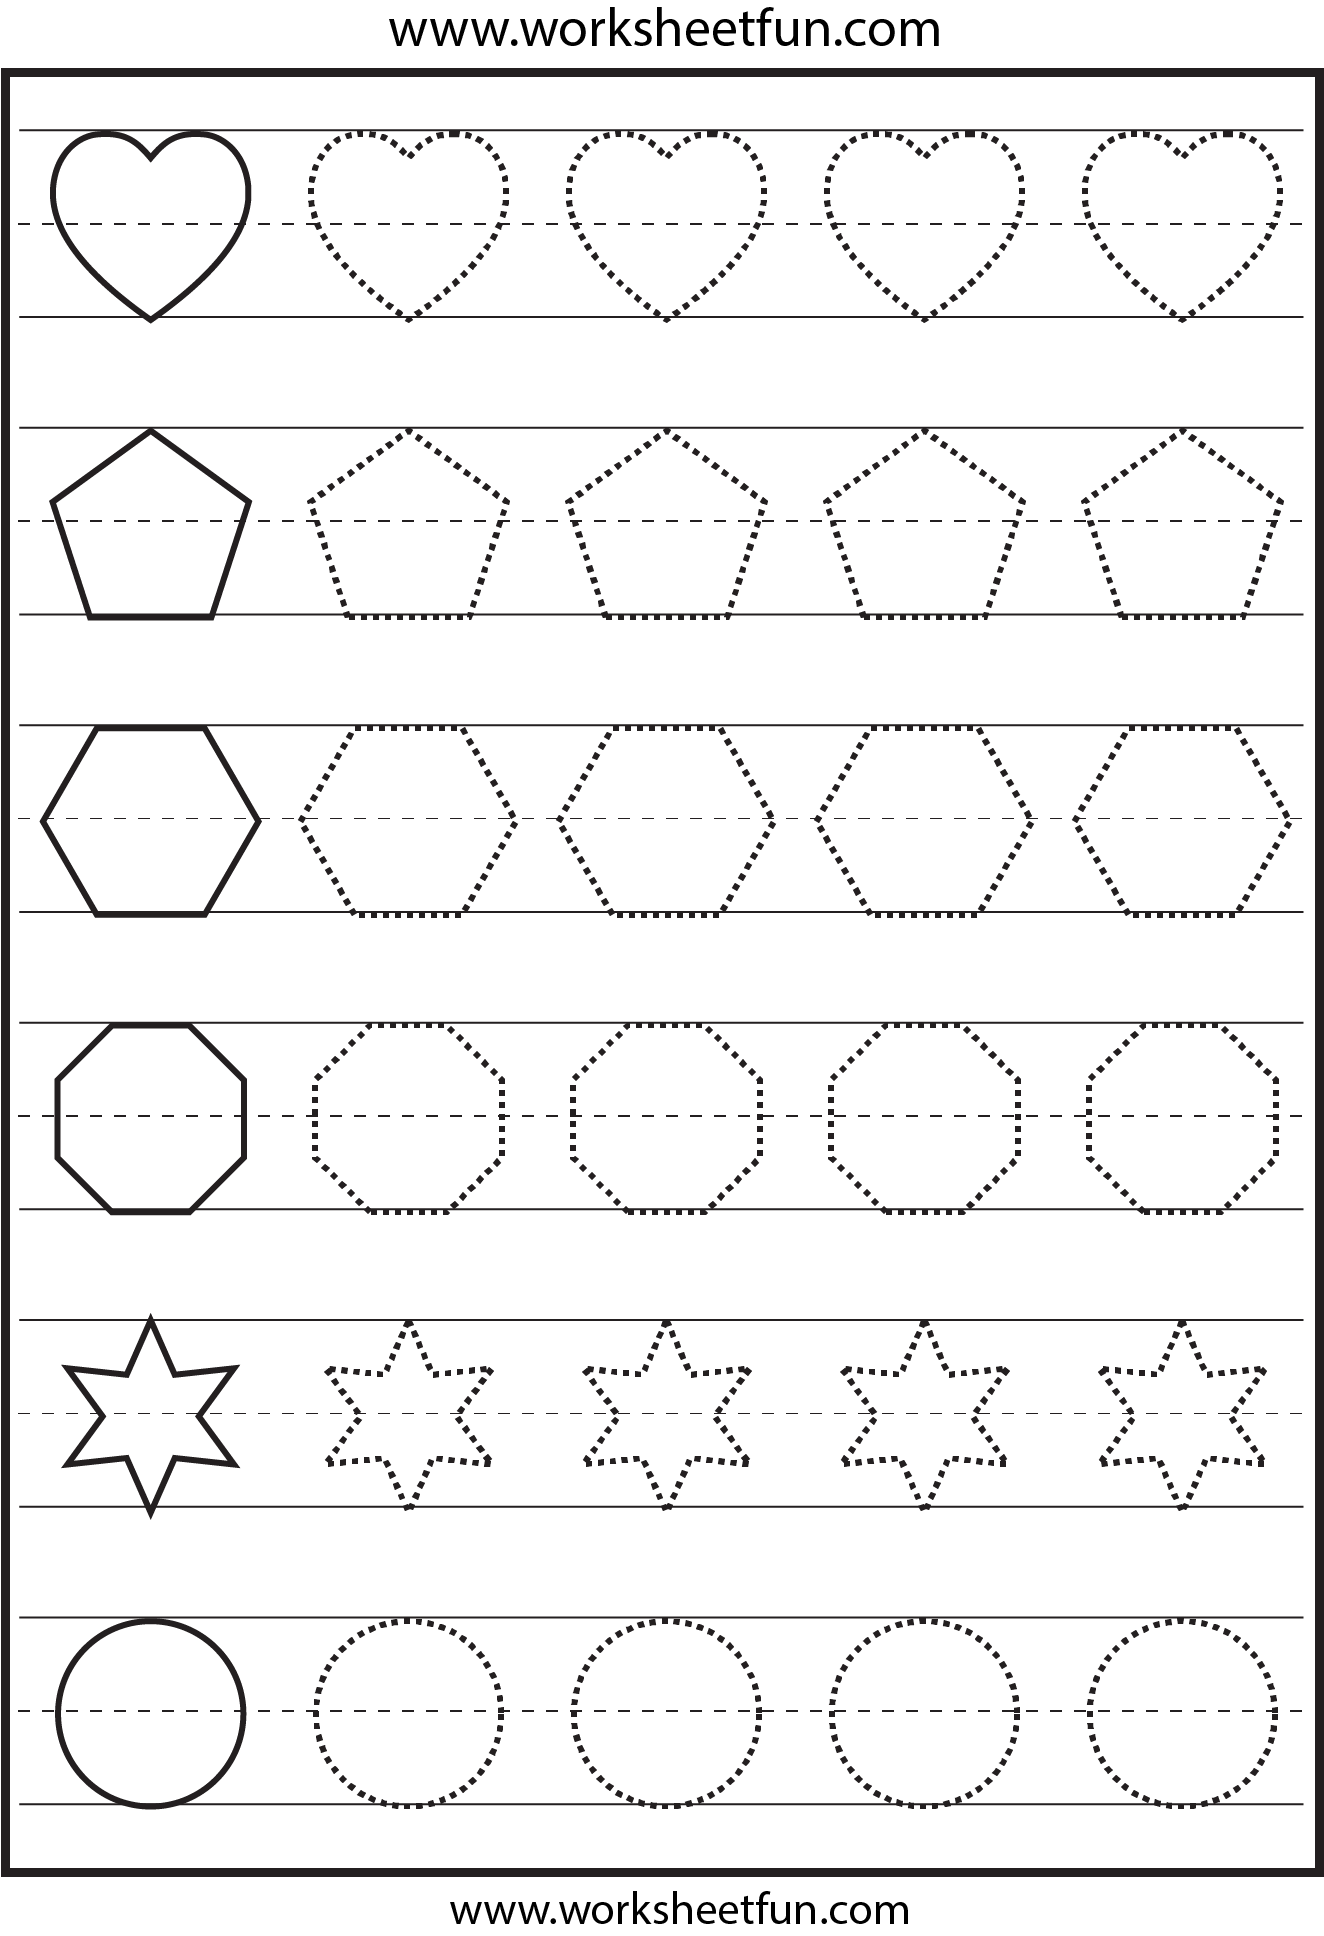 Worksheet Letter Tracing For Toddlers printable tracing letters for toddlers cover sample free educational alphabet worksheets shape 1